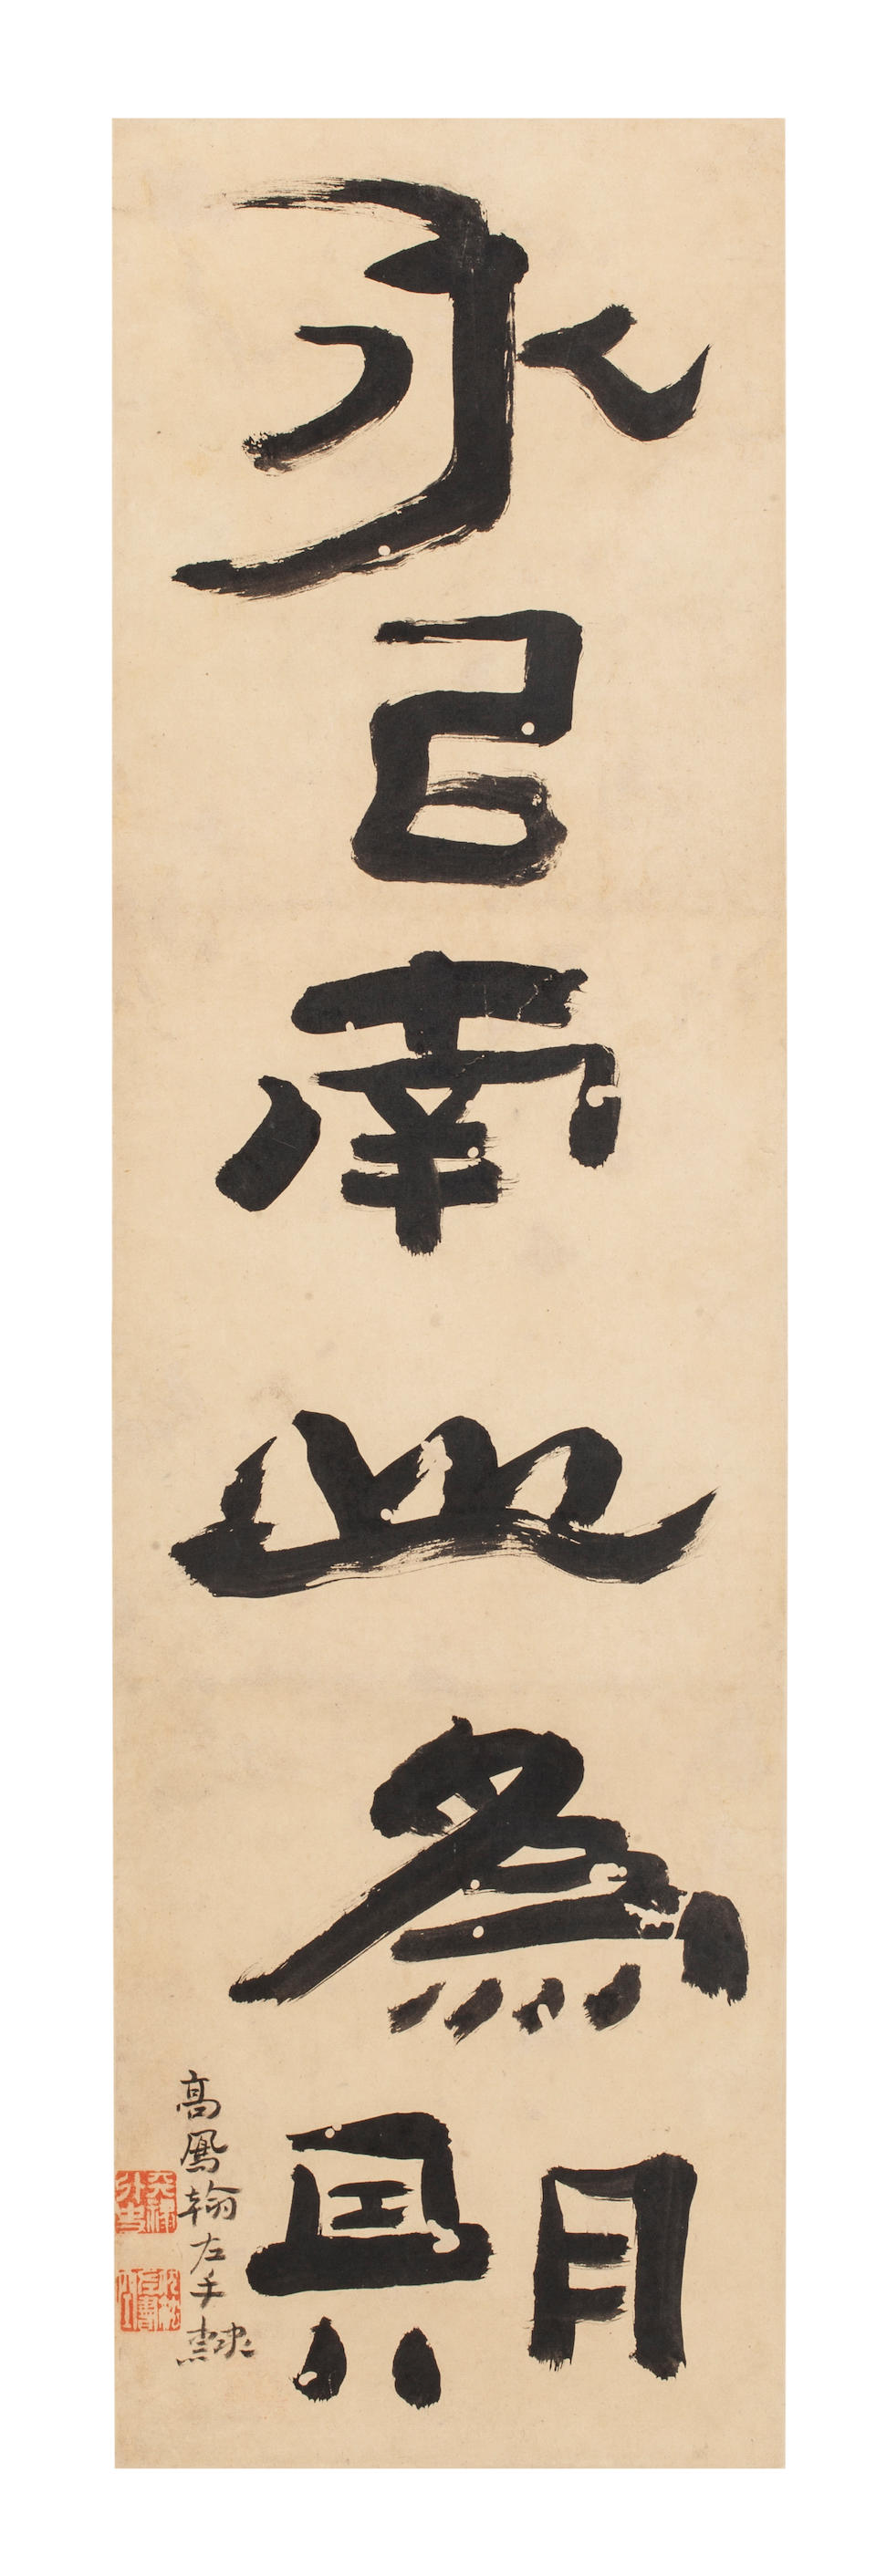 Gao Fenghan (1683 - 1748) Calligraphic couplet, 1738